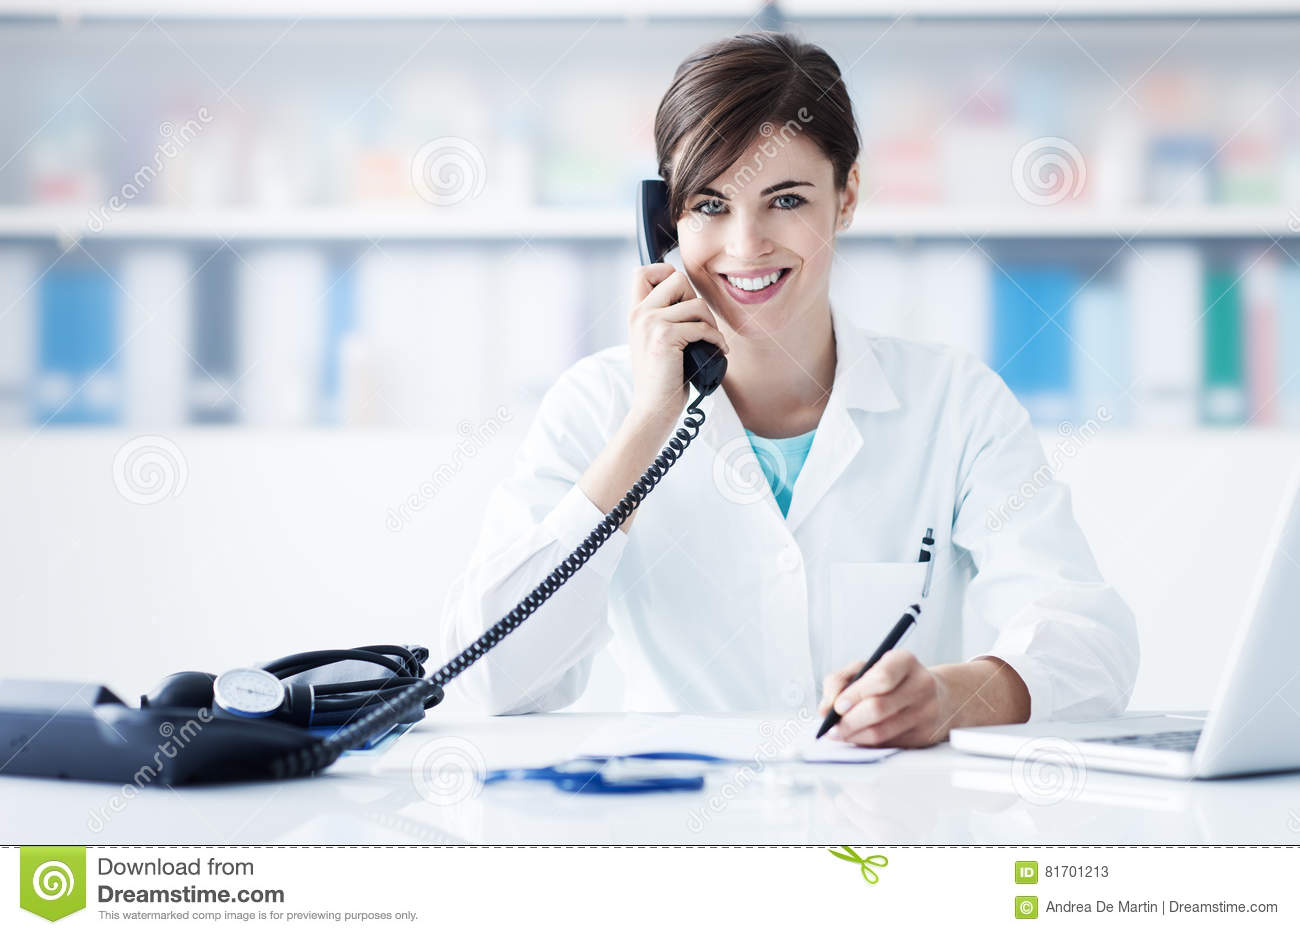 Telehealth Consults to Continue